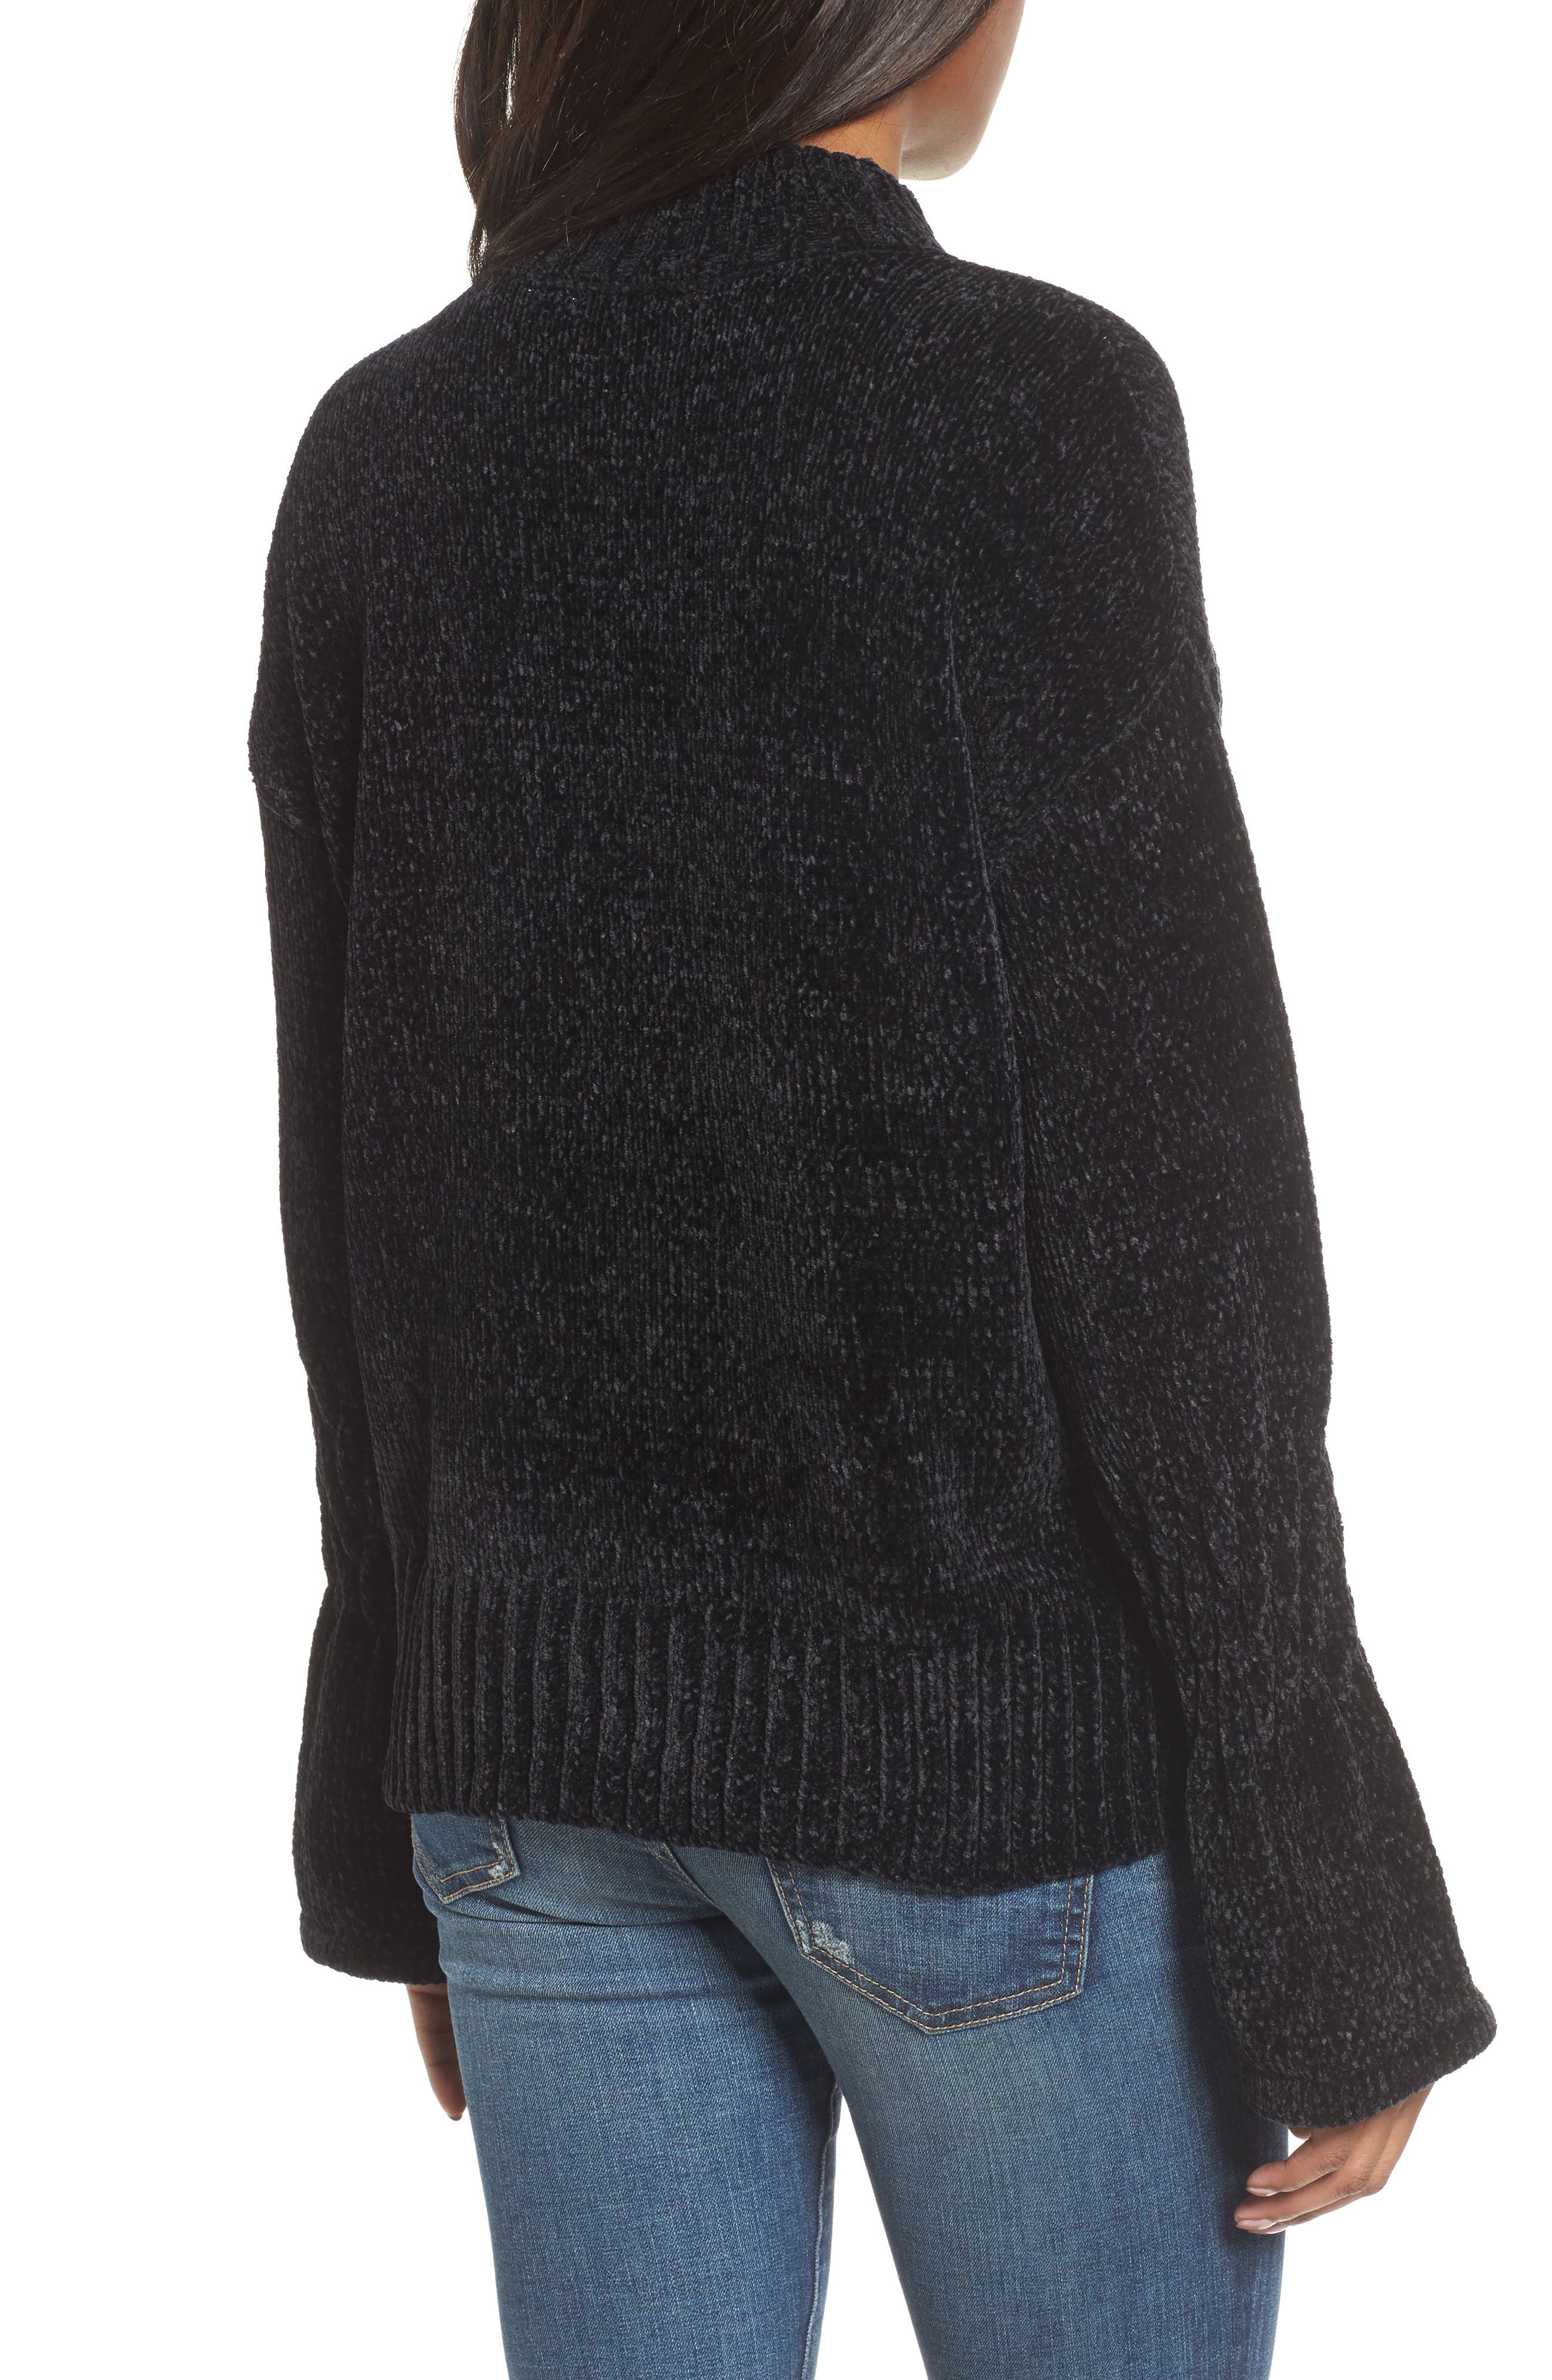 Bell Cuff Sweater,                             Alternate thumbnail 2, color,                             001